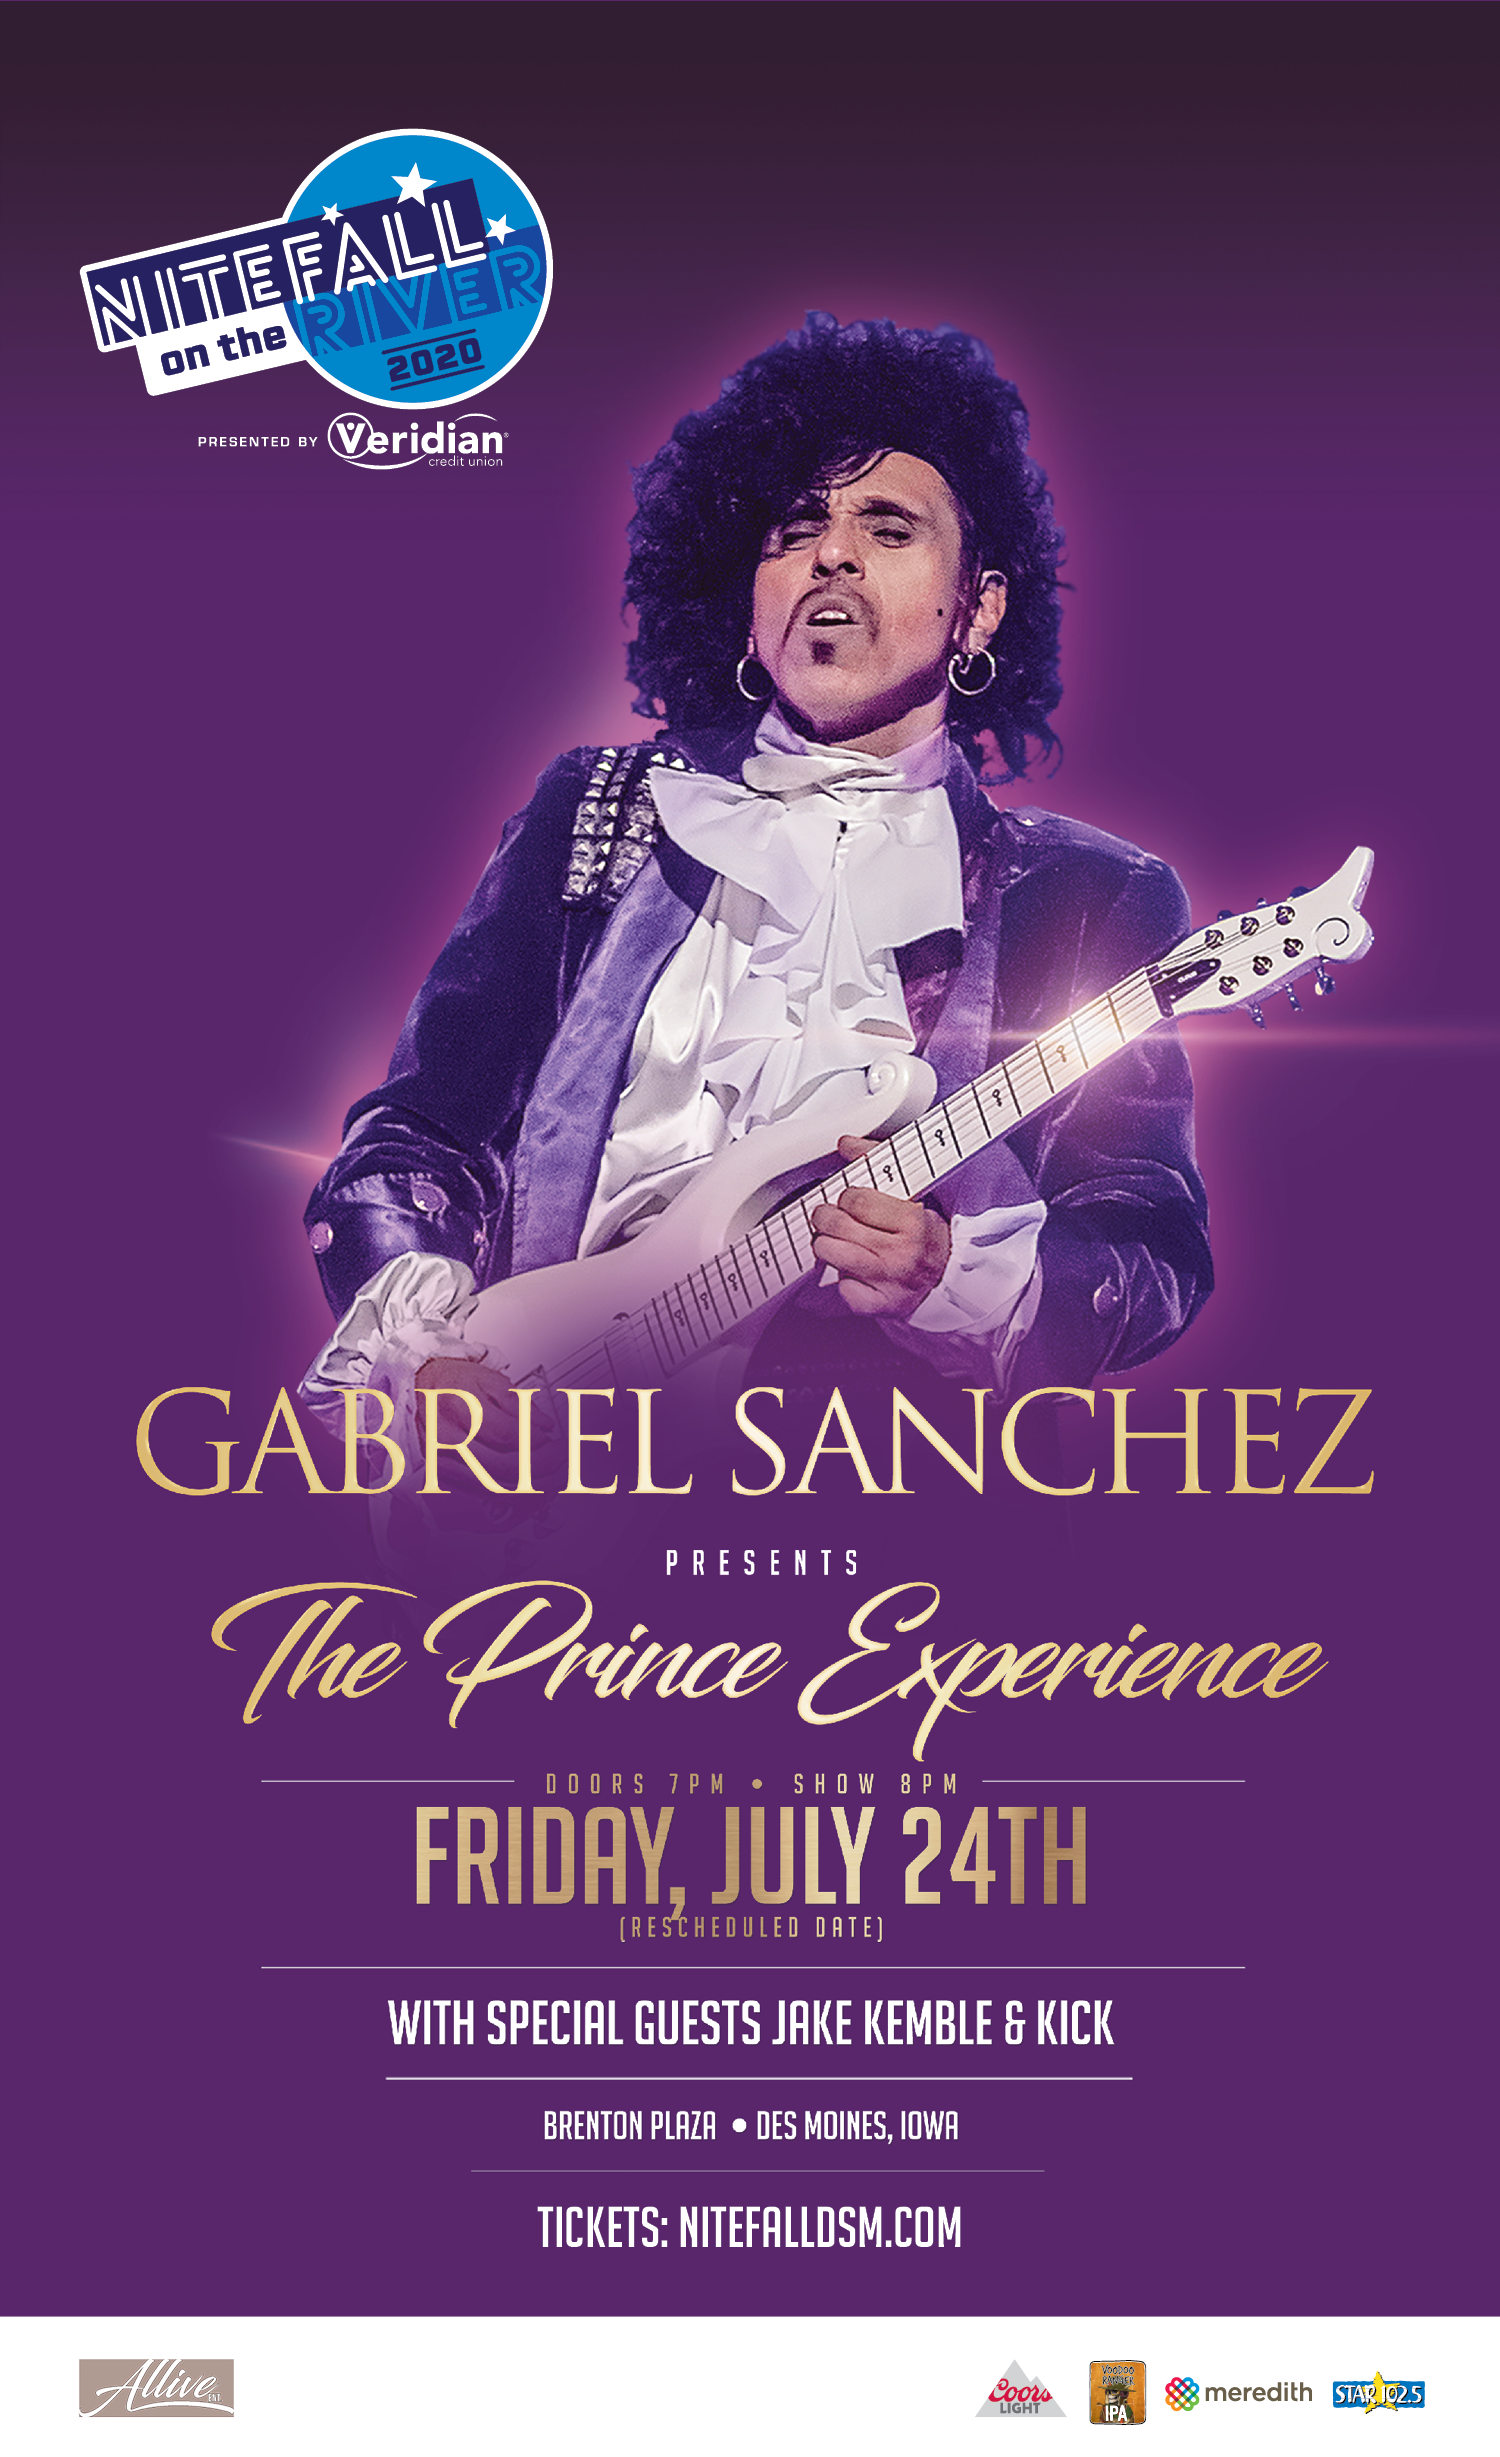 (POSTPONED TO JULY 24TH) Prince Experience at Nitefall on the River